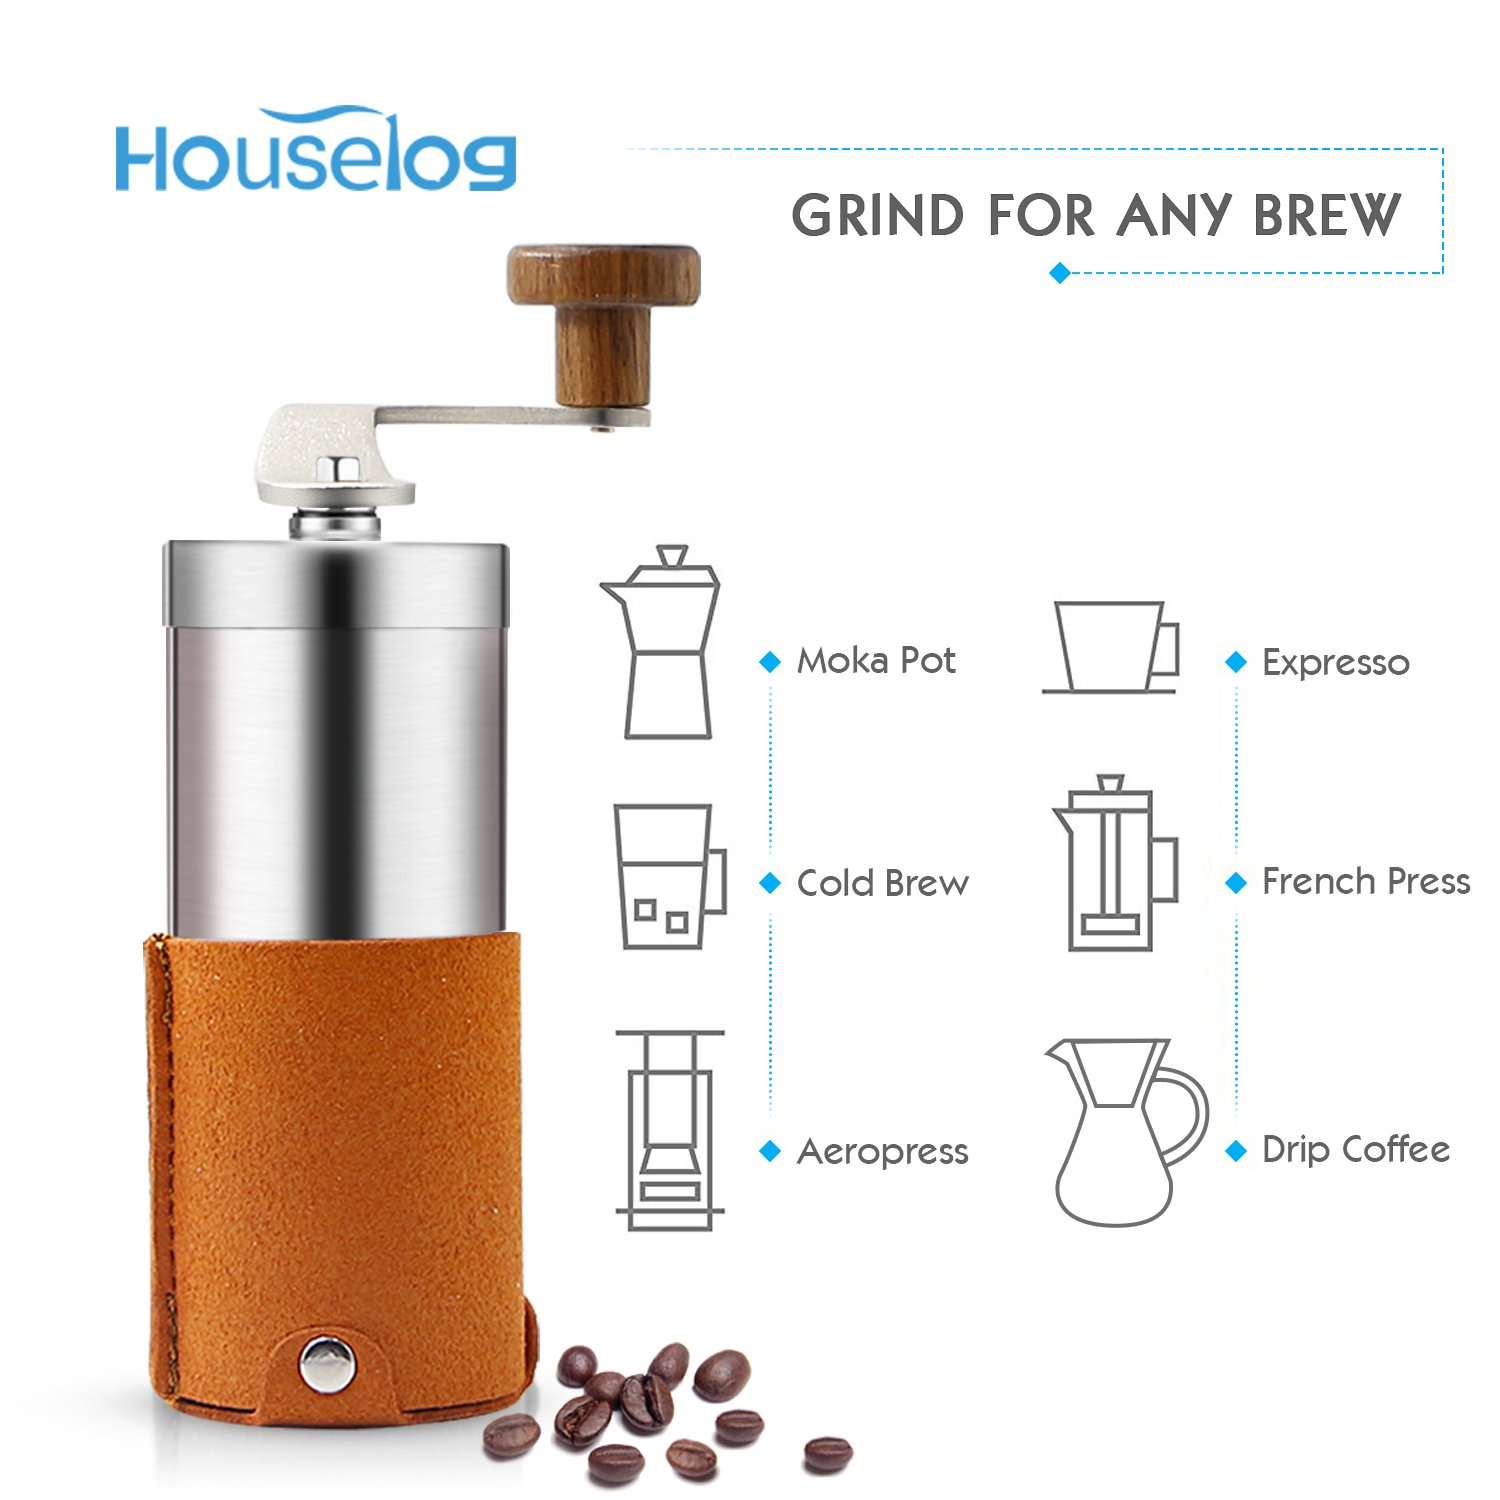 2018 New Portable Manual Coffee Grinder Set Professional Conical Ceramic Burrs Stainless Steel Grinder Easy to Clean for Home Travel Outdoor by RioRand (Image #2)